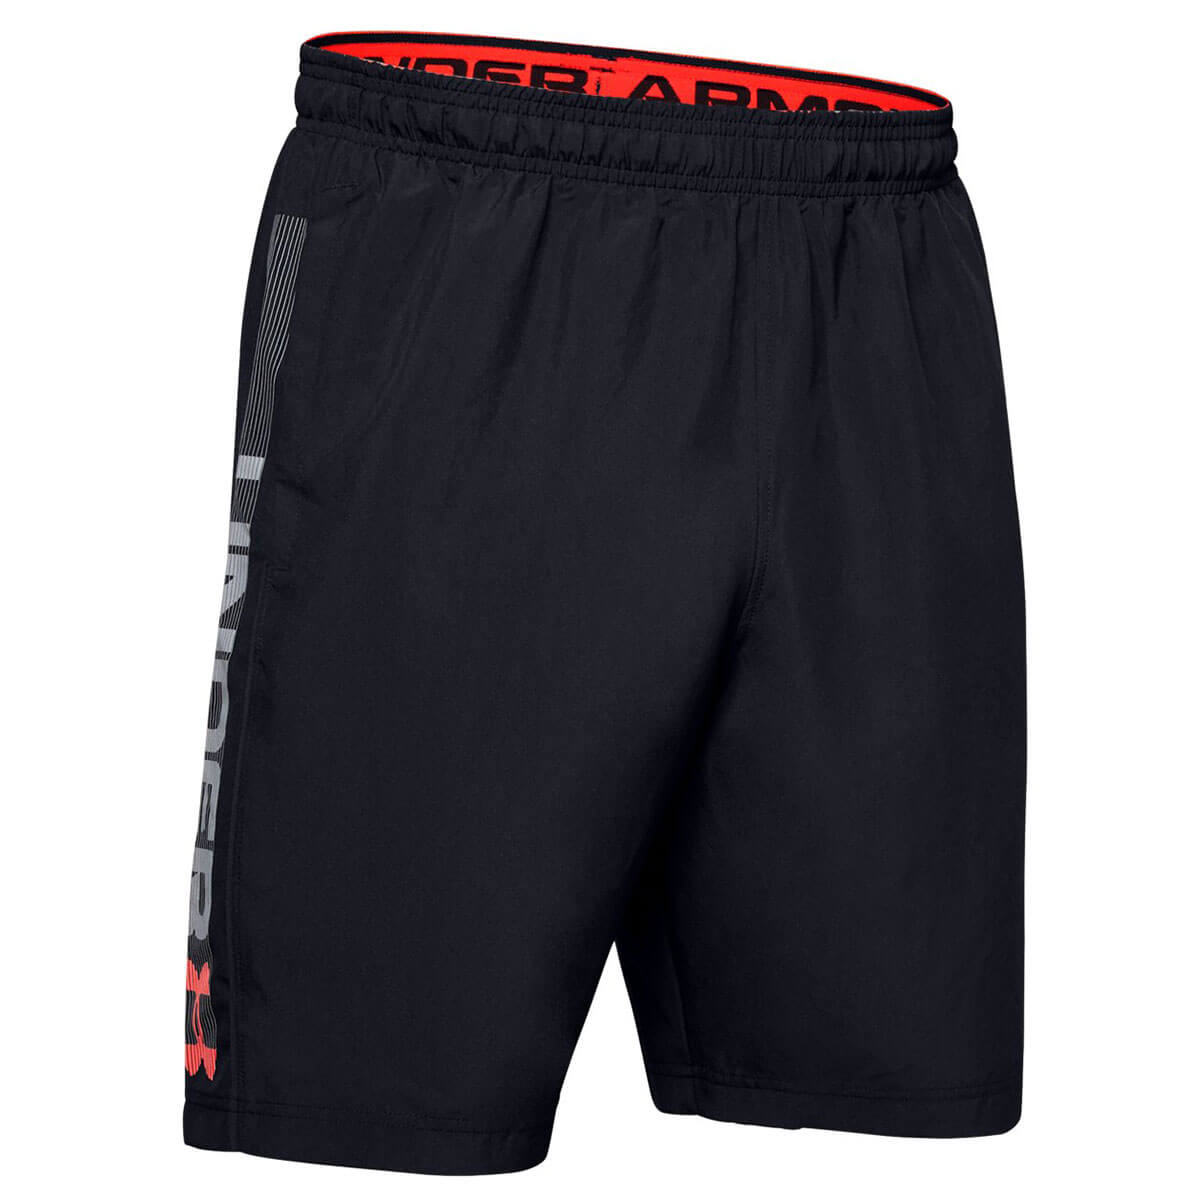 Under-Armour-Mens-2019-Woven-Graphic-Wordmark-Lightweight-Breathable-Shorts thumbnail 8